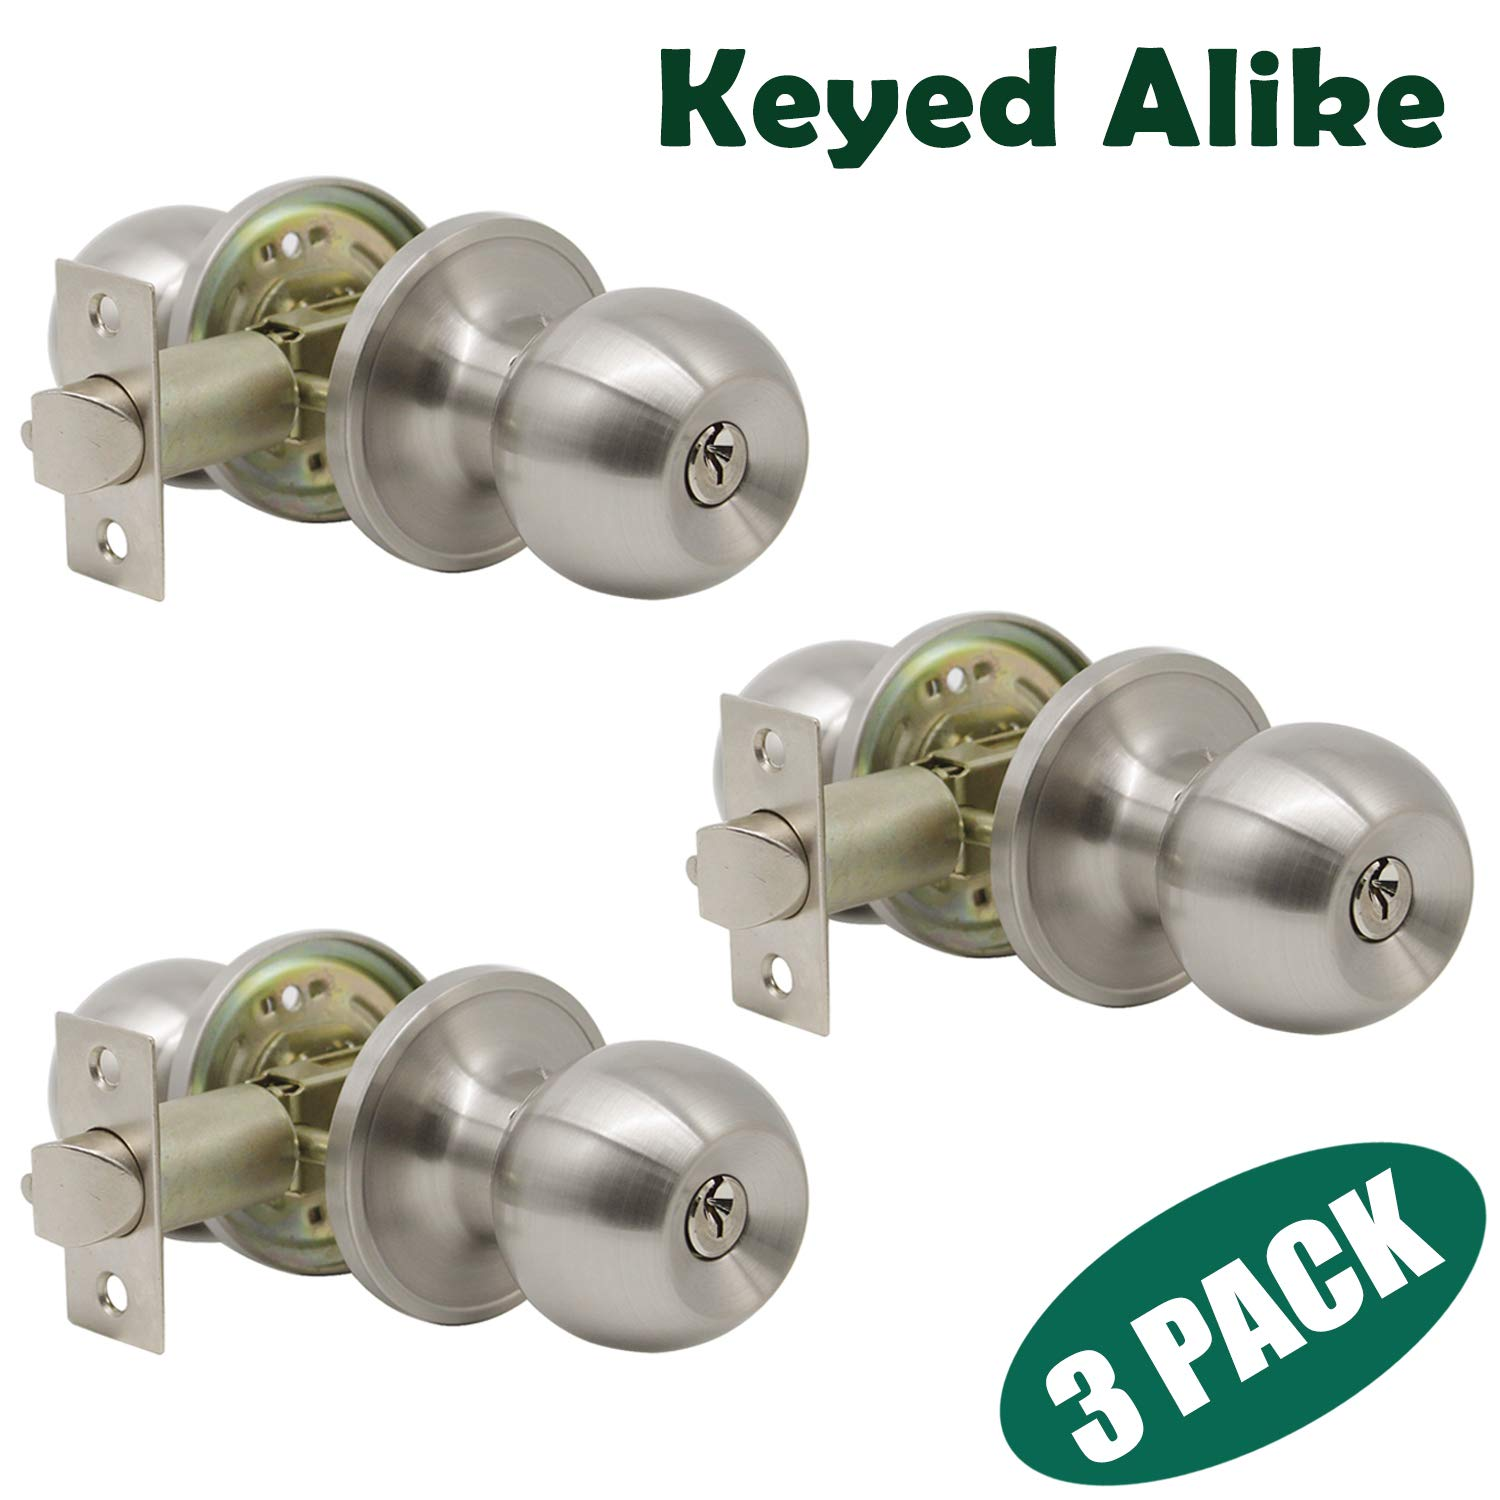 Probrico Satin Nickel Finish One Keyway Door Knobs Hardware Entry with Key Handles Keyed Alike Door Lockset, 3 Pack, Keyed Hardware